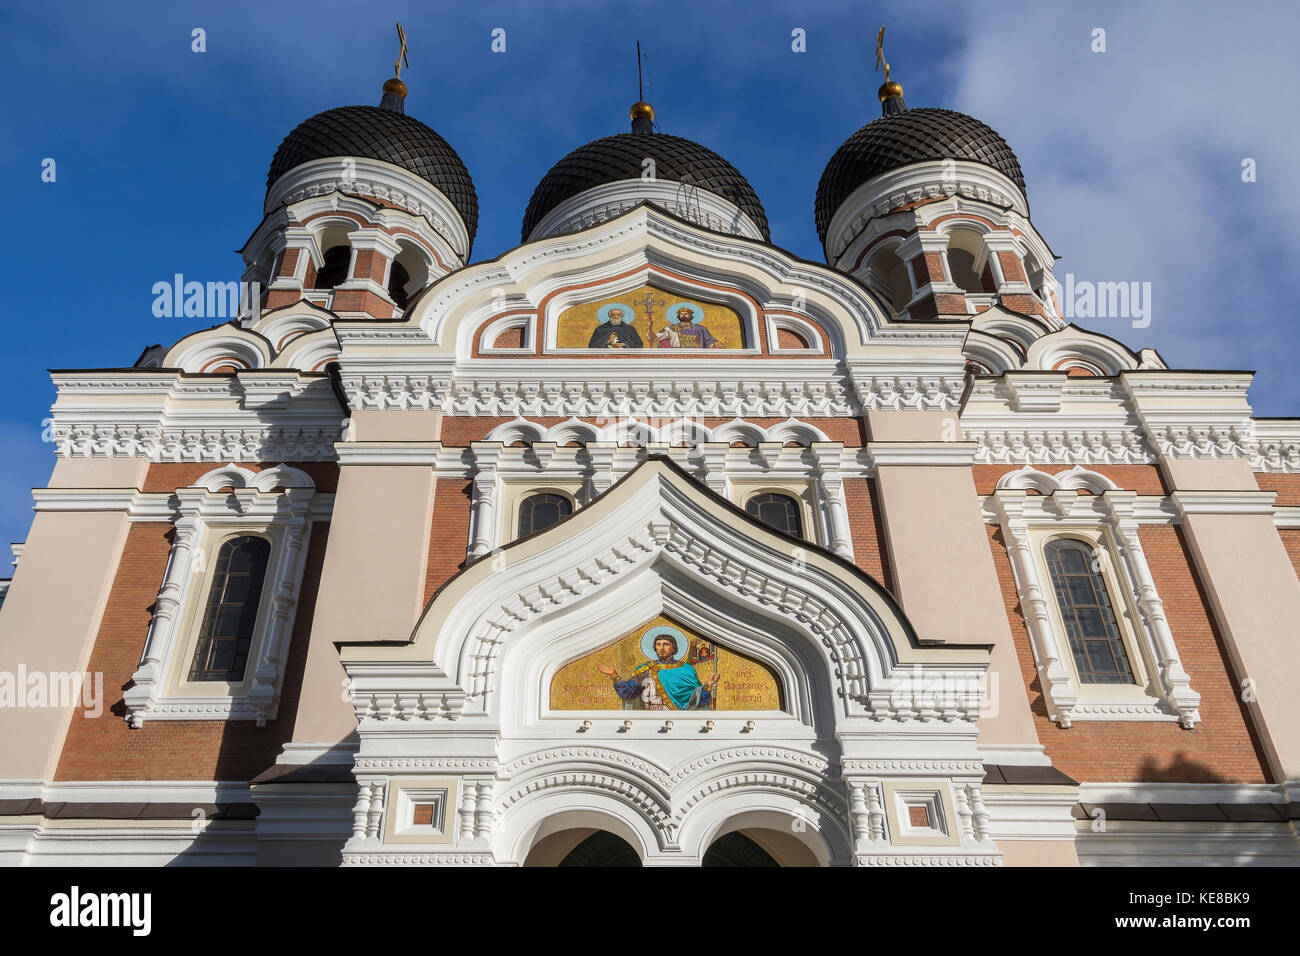 The Alexander Nevsky Cathedral on Toompea Hill in the Tallinn Old Town in Estonia. An Eastern Orthodox Church built - Stock Image